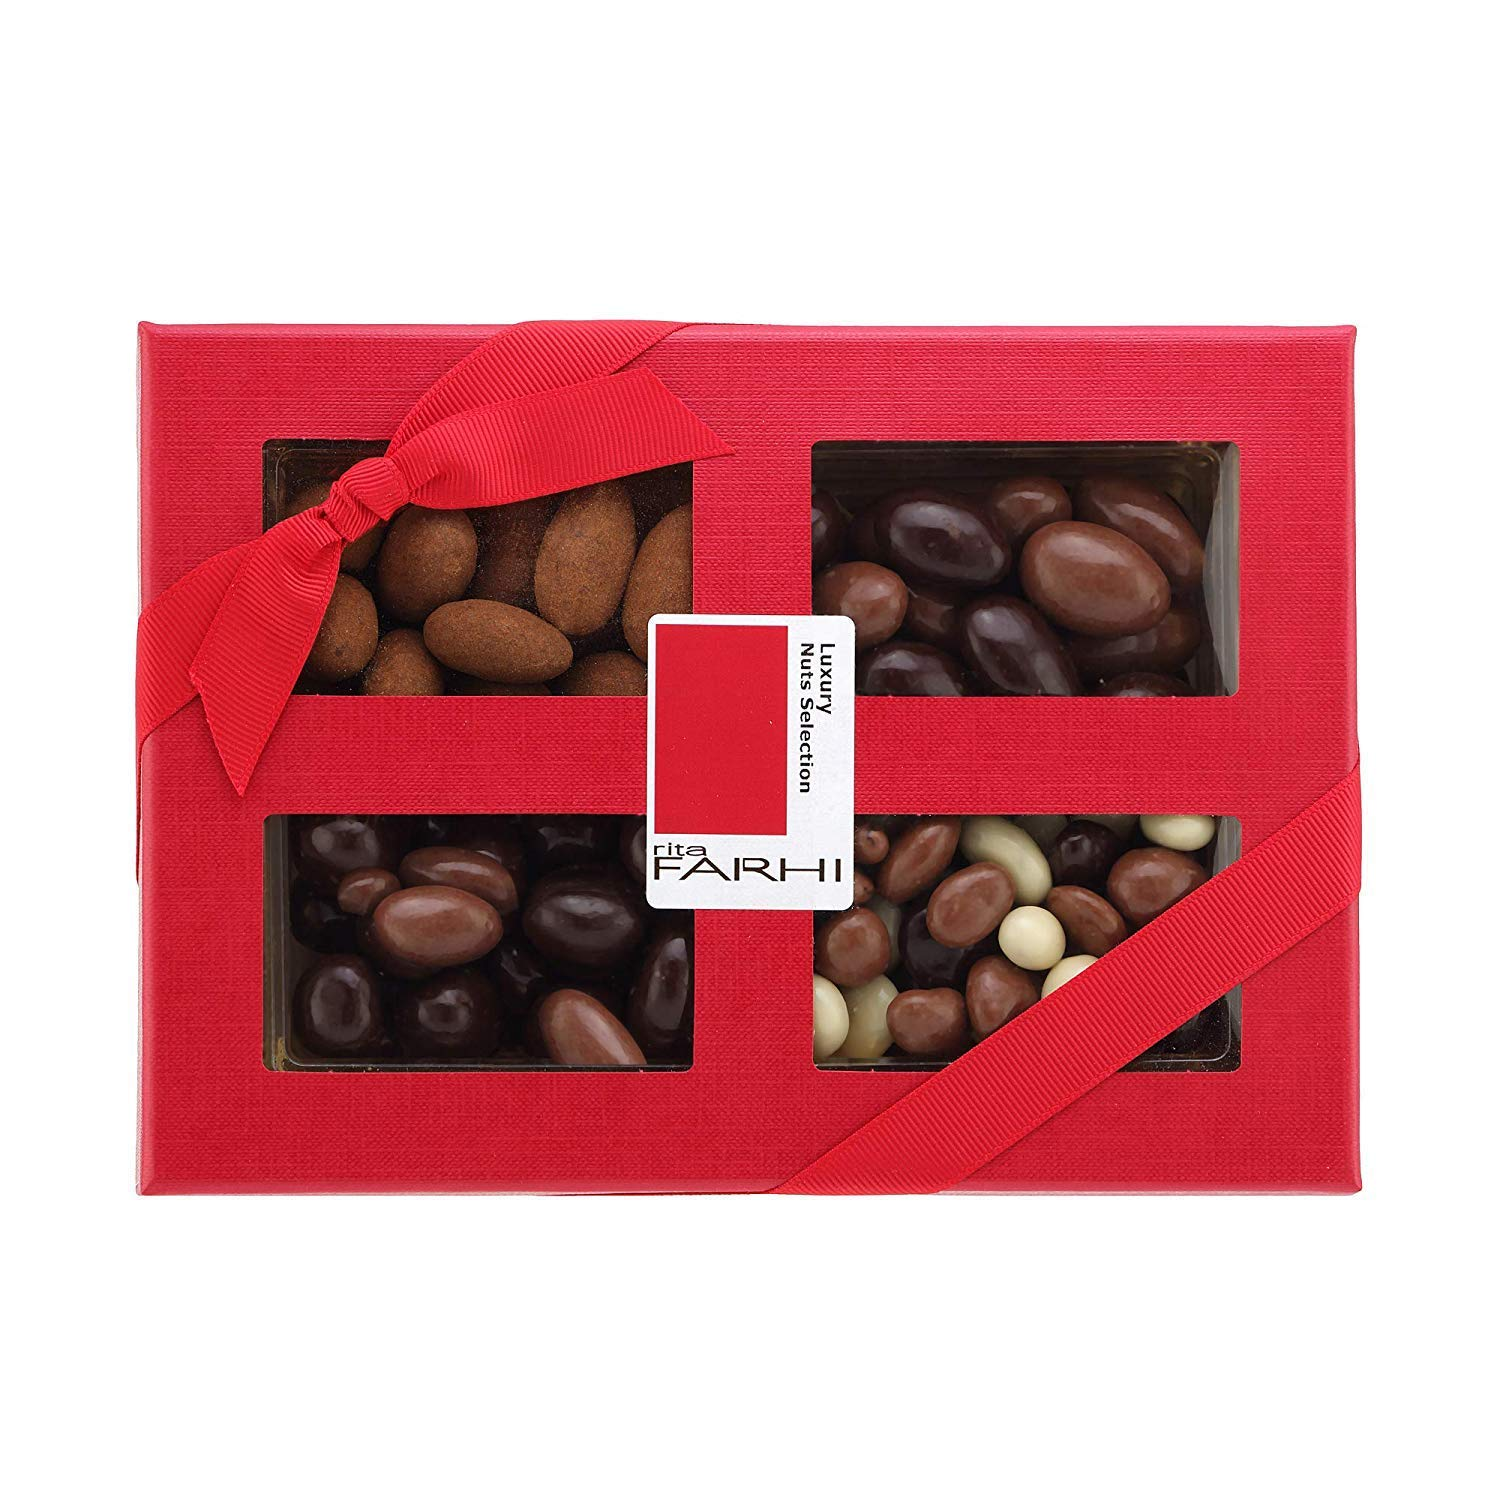 Rita Farhi Selection of Chocolate Covered Nuts (Almonds, Brazils, Hazelnuts) in a Luxury Gift Box, 390 g